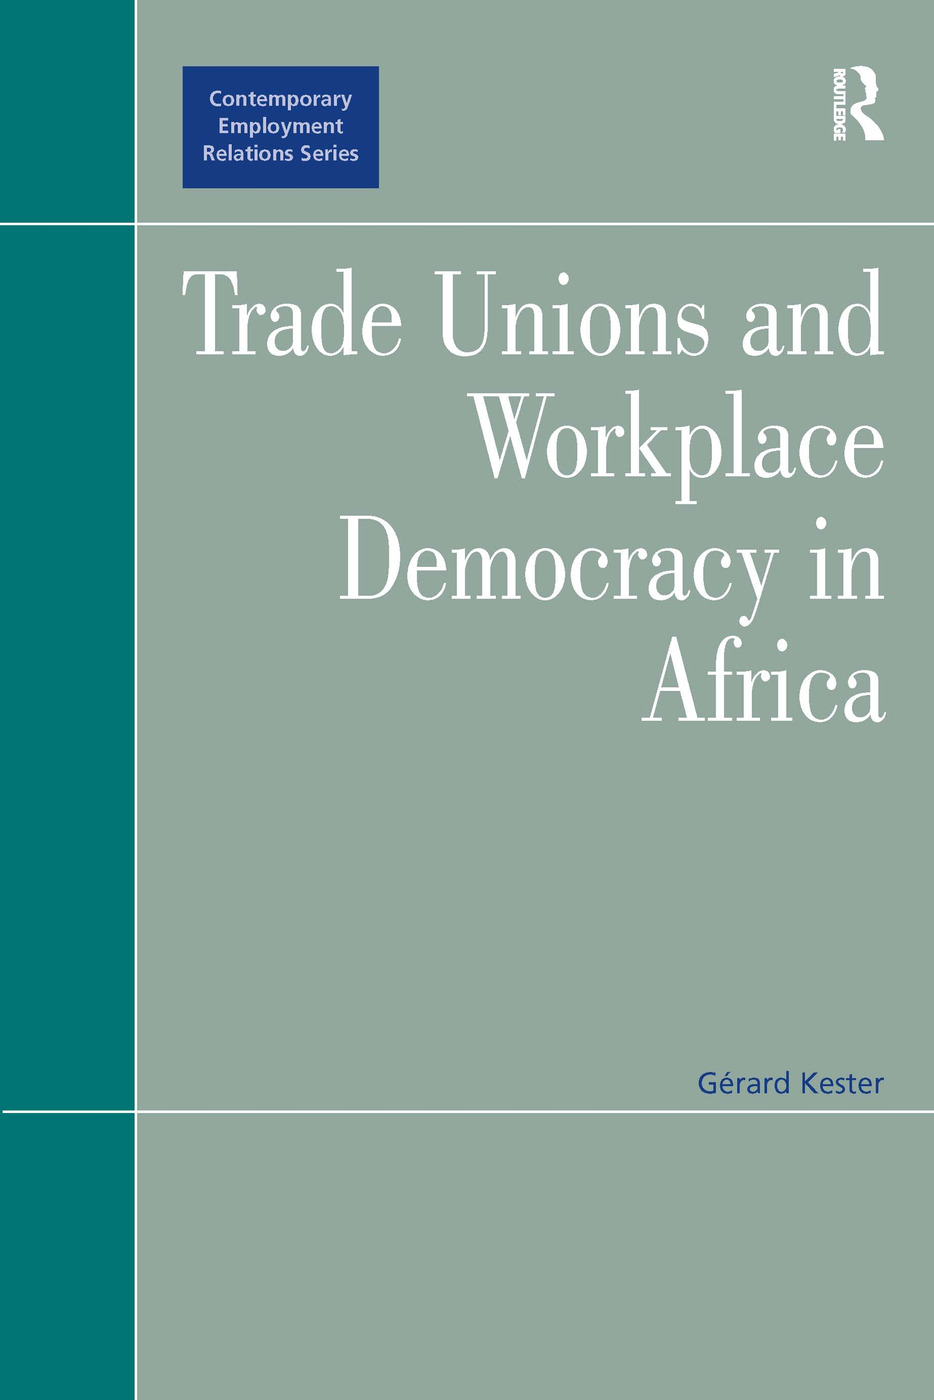 Trade Unions and Workplace Democracy in Africa: 1st Edition (Hardback) book cover